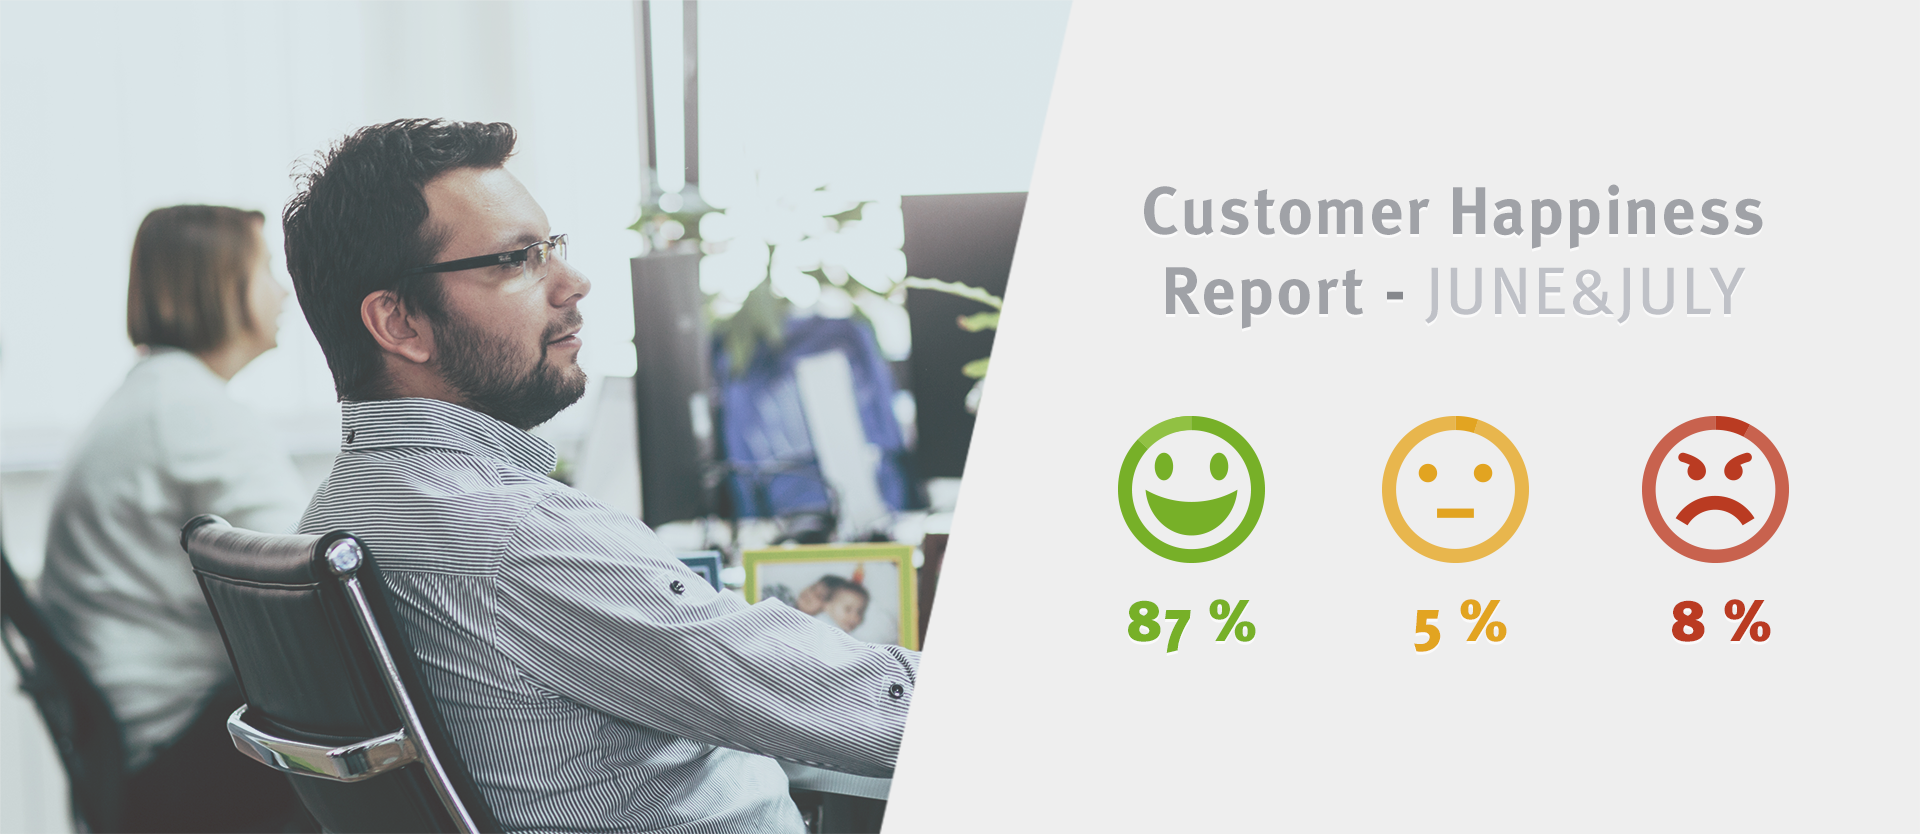 Customer Happiness Report June & July